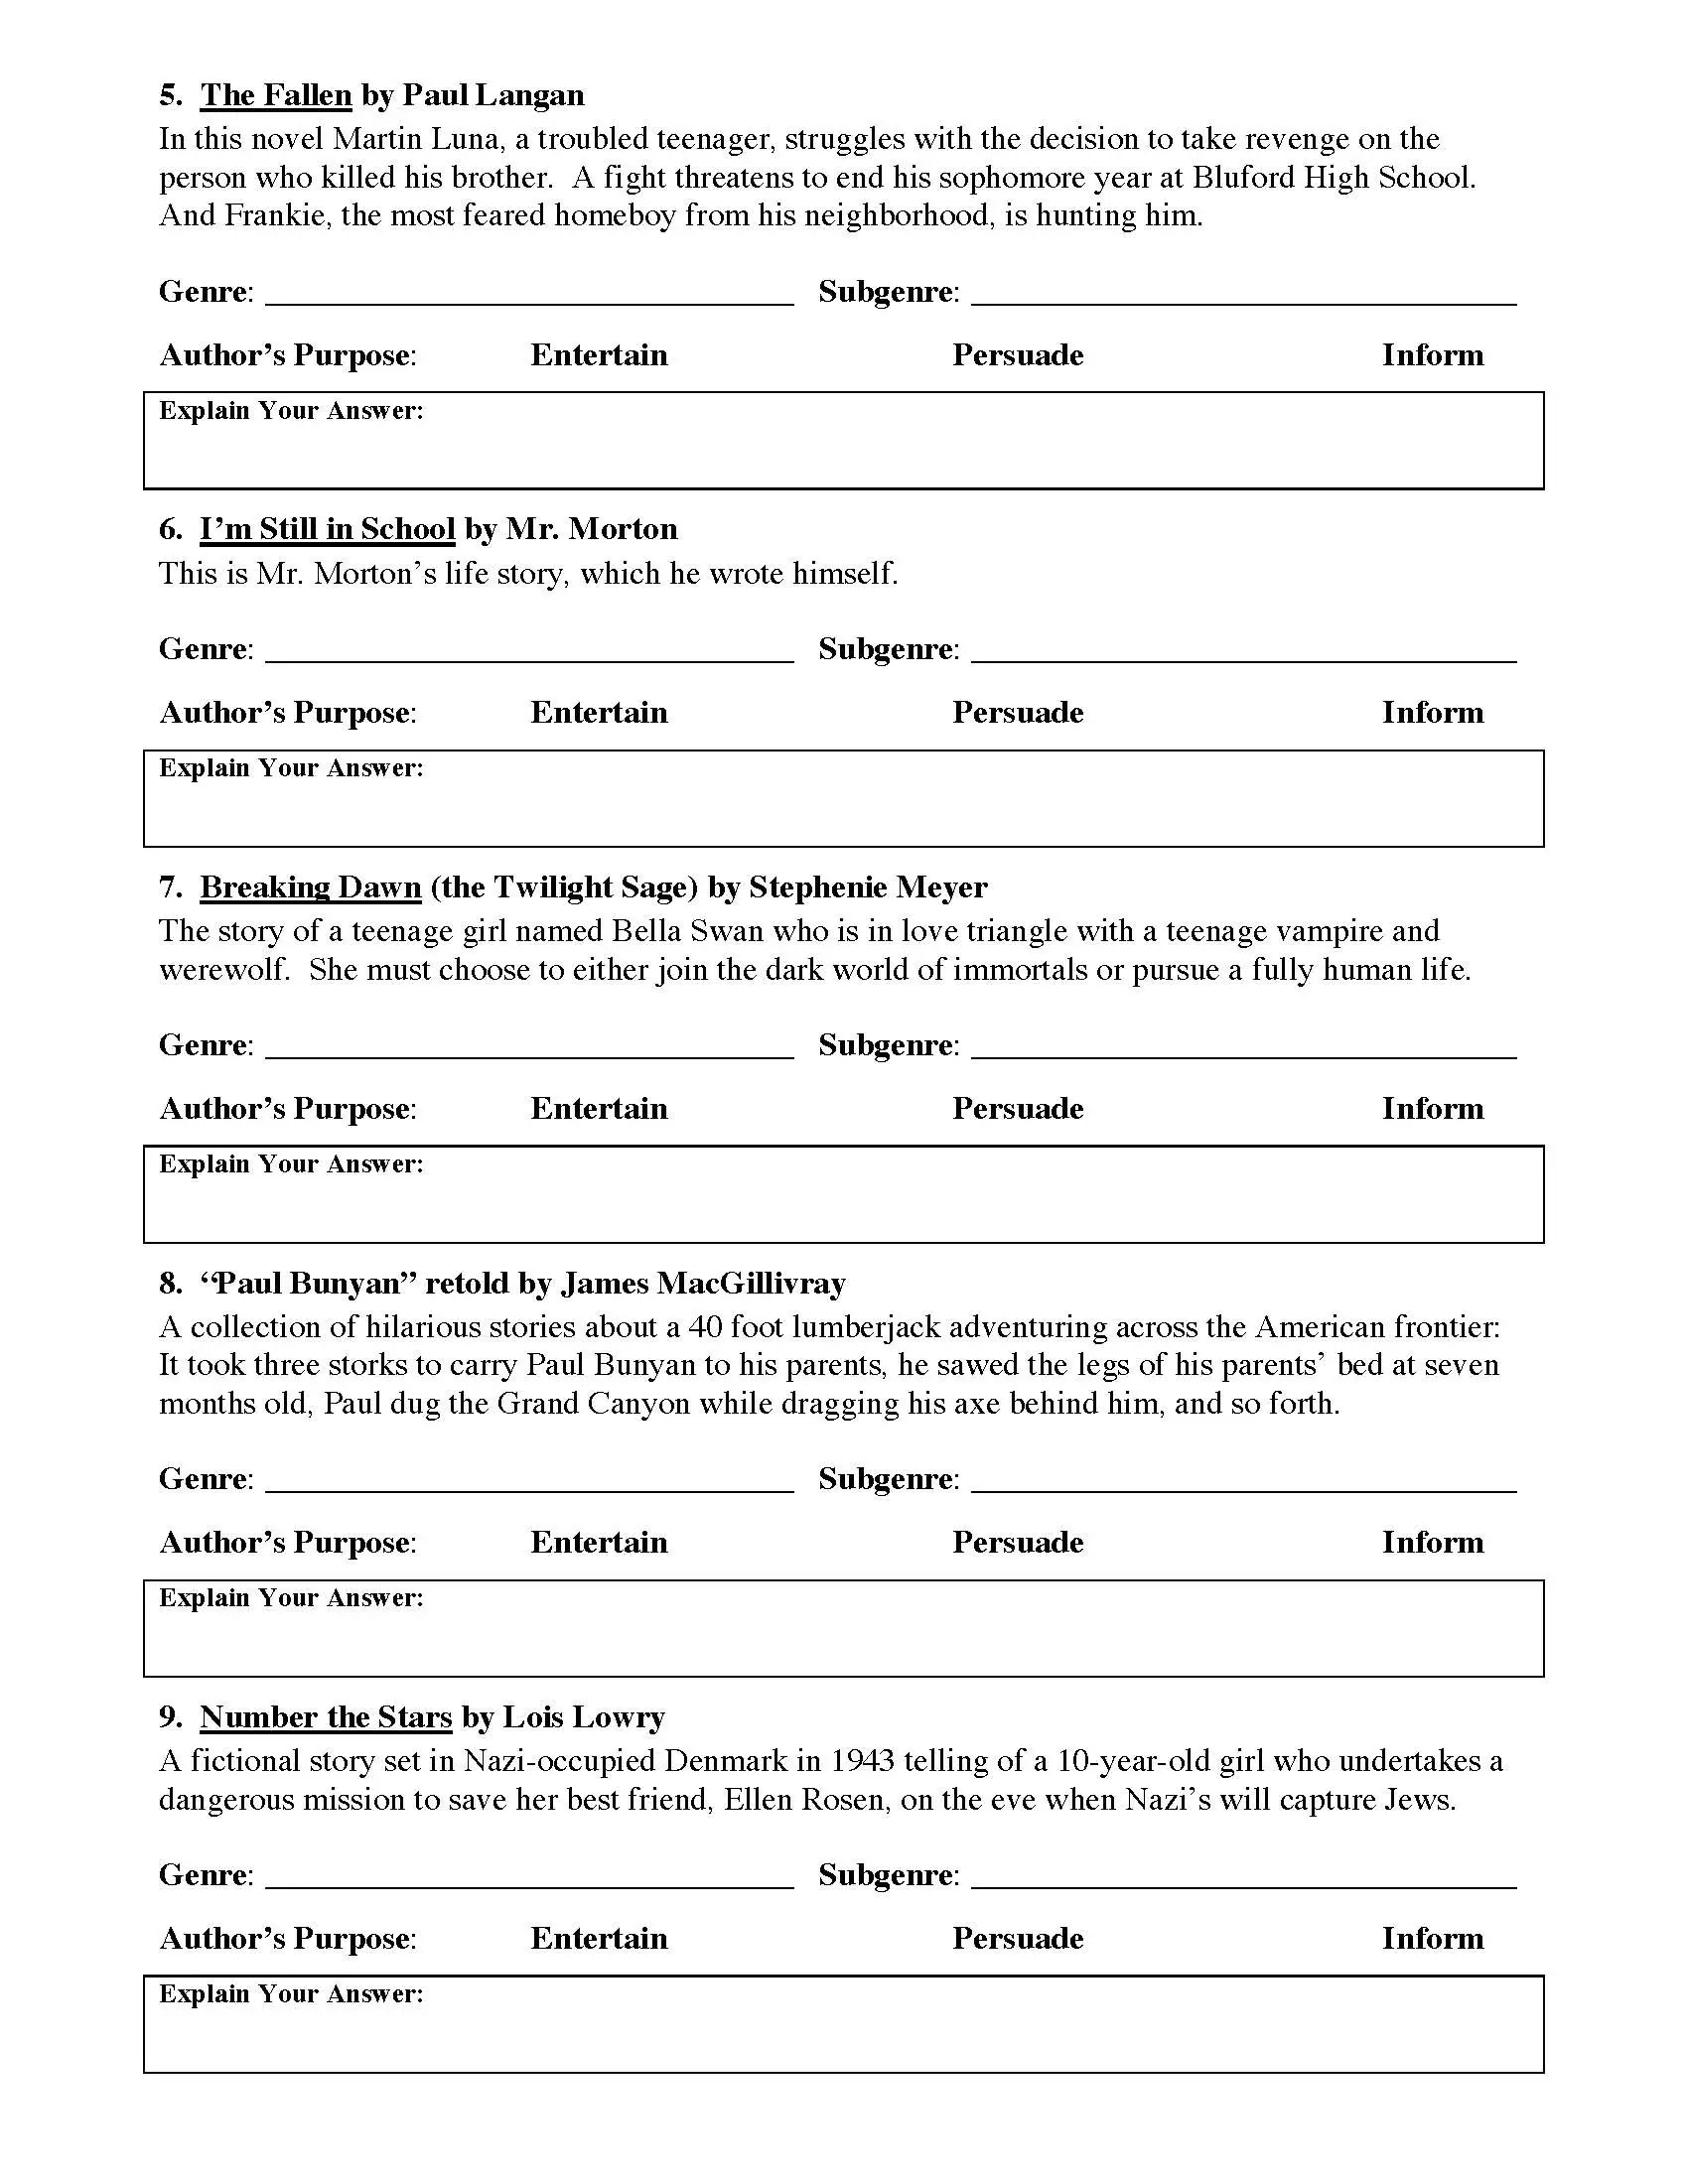 hight resolution of Genre and Author's Purpose Worksheet 1   Preview